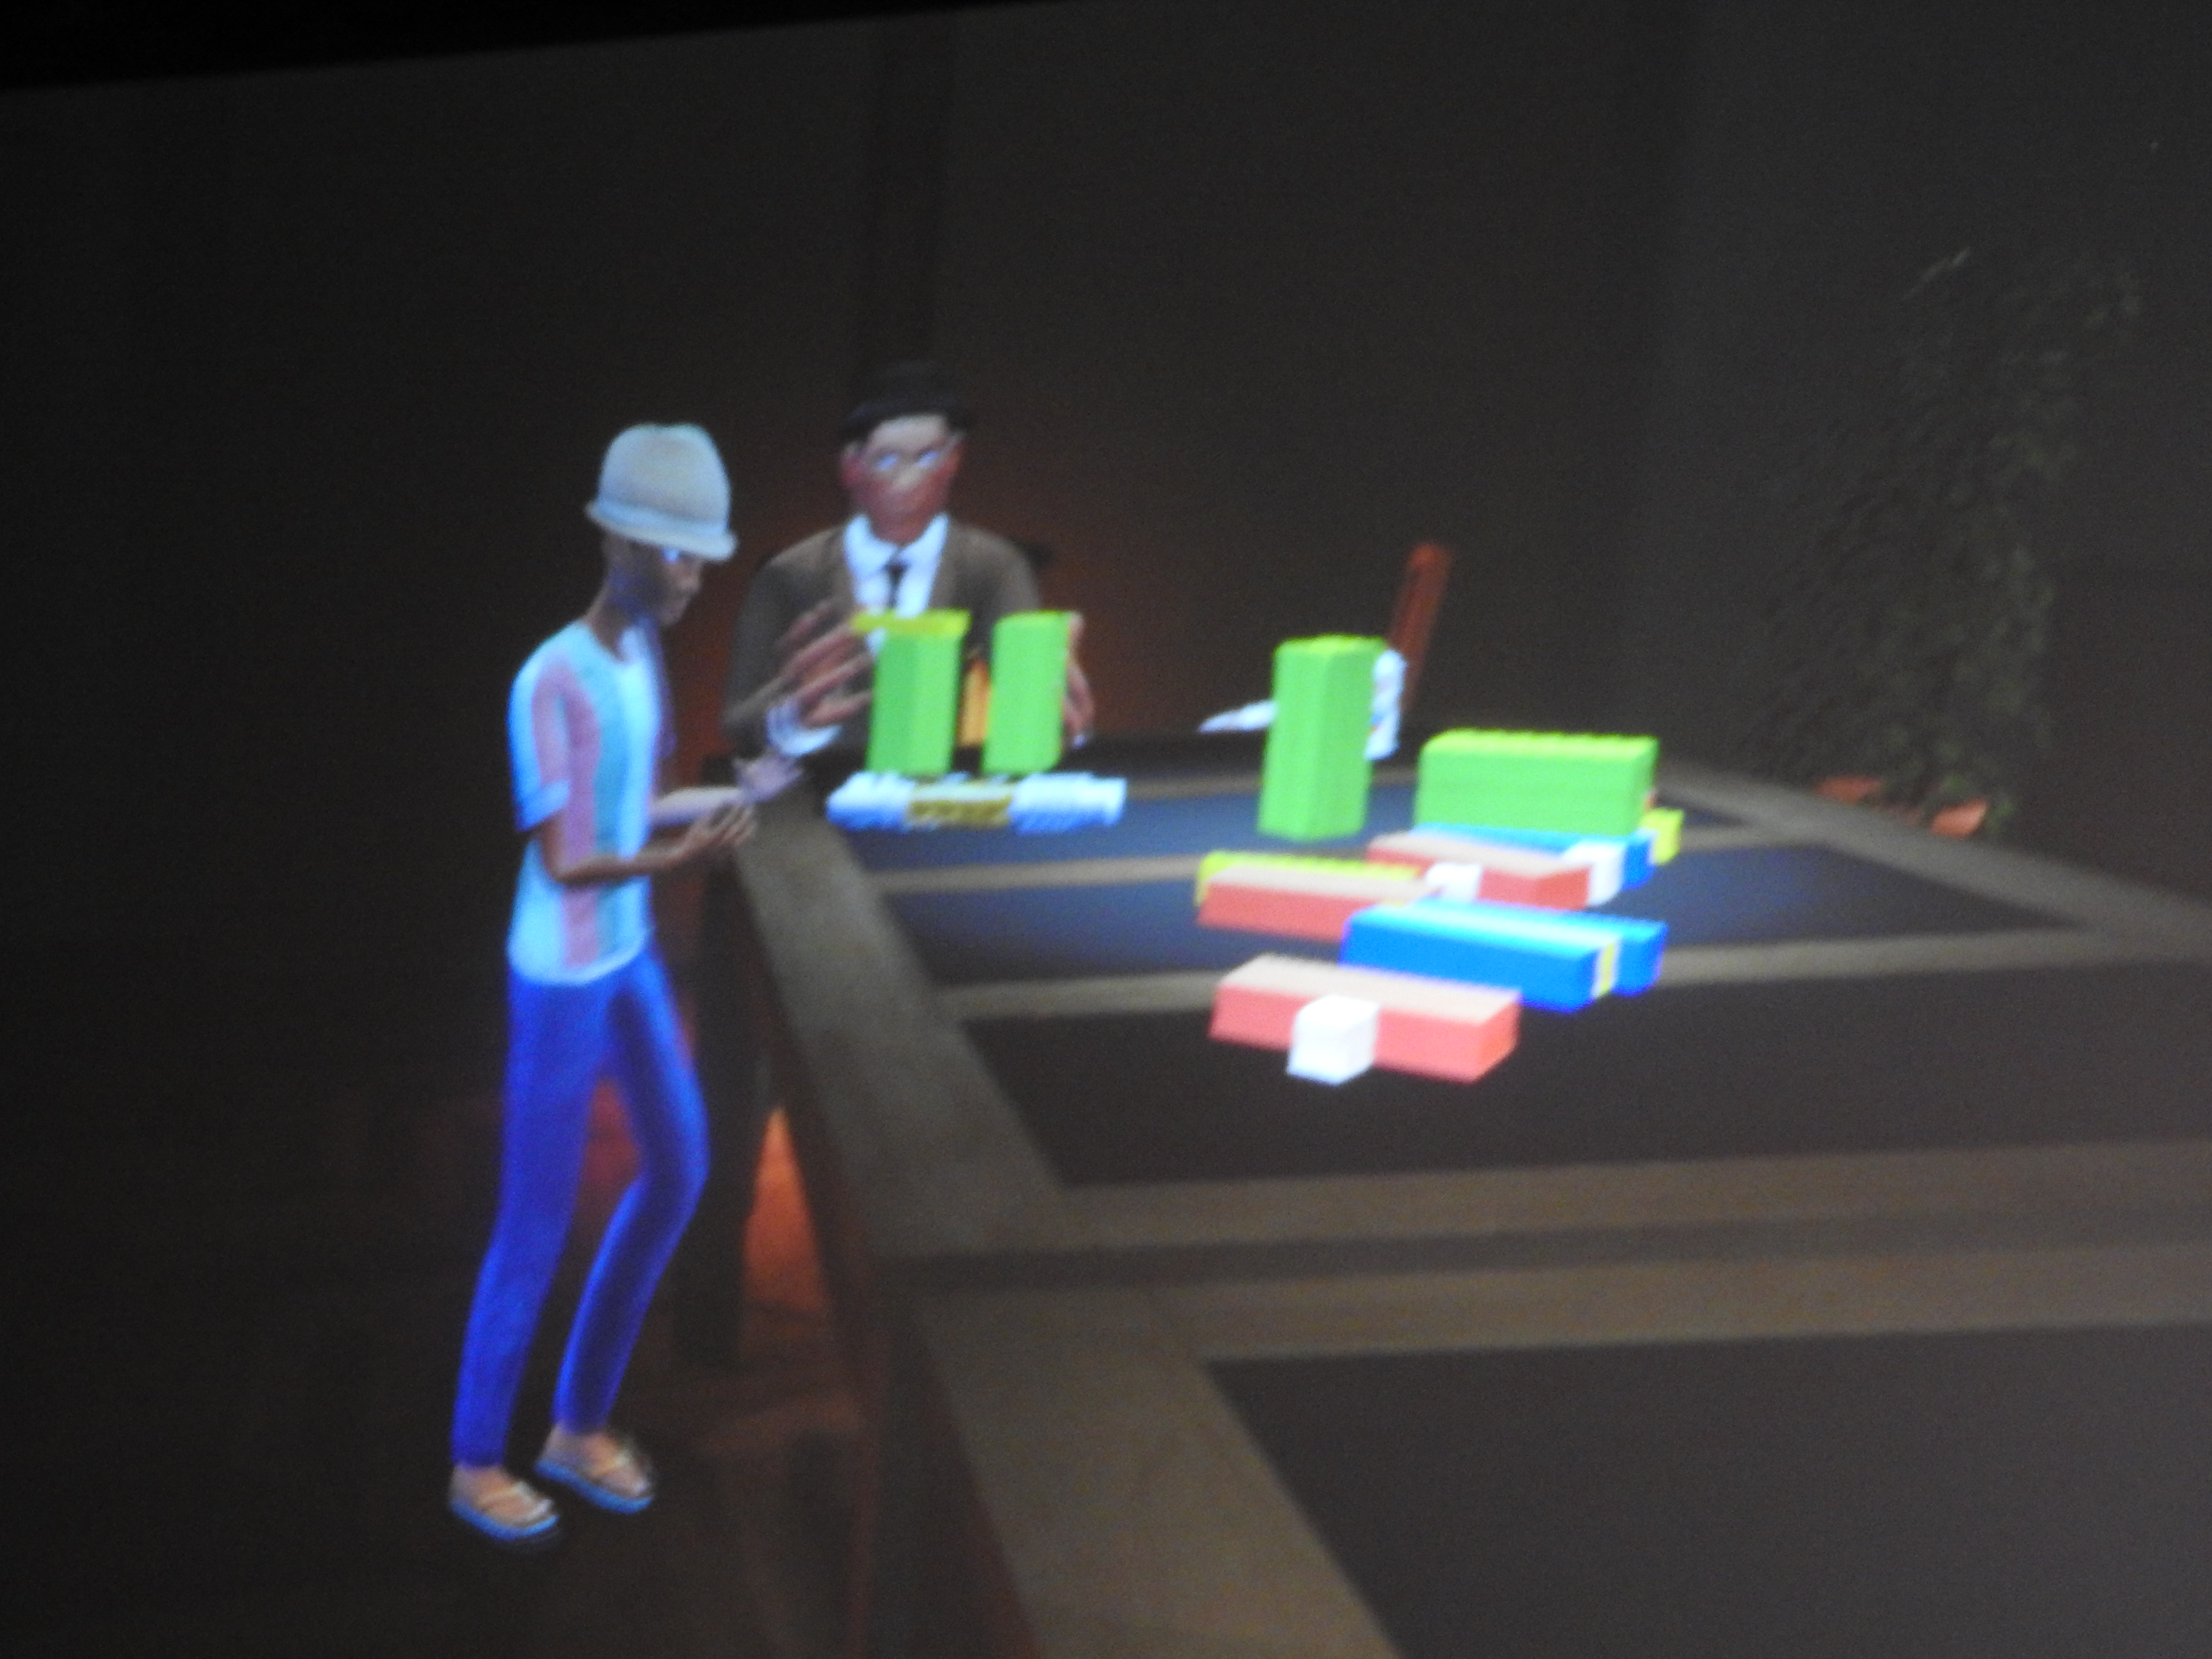 VR isn't just for games — it works for the enterprise, too